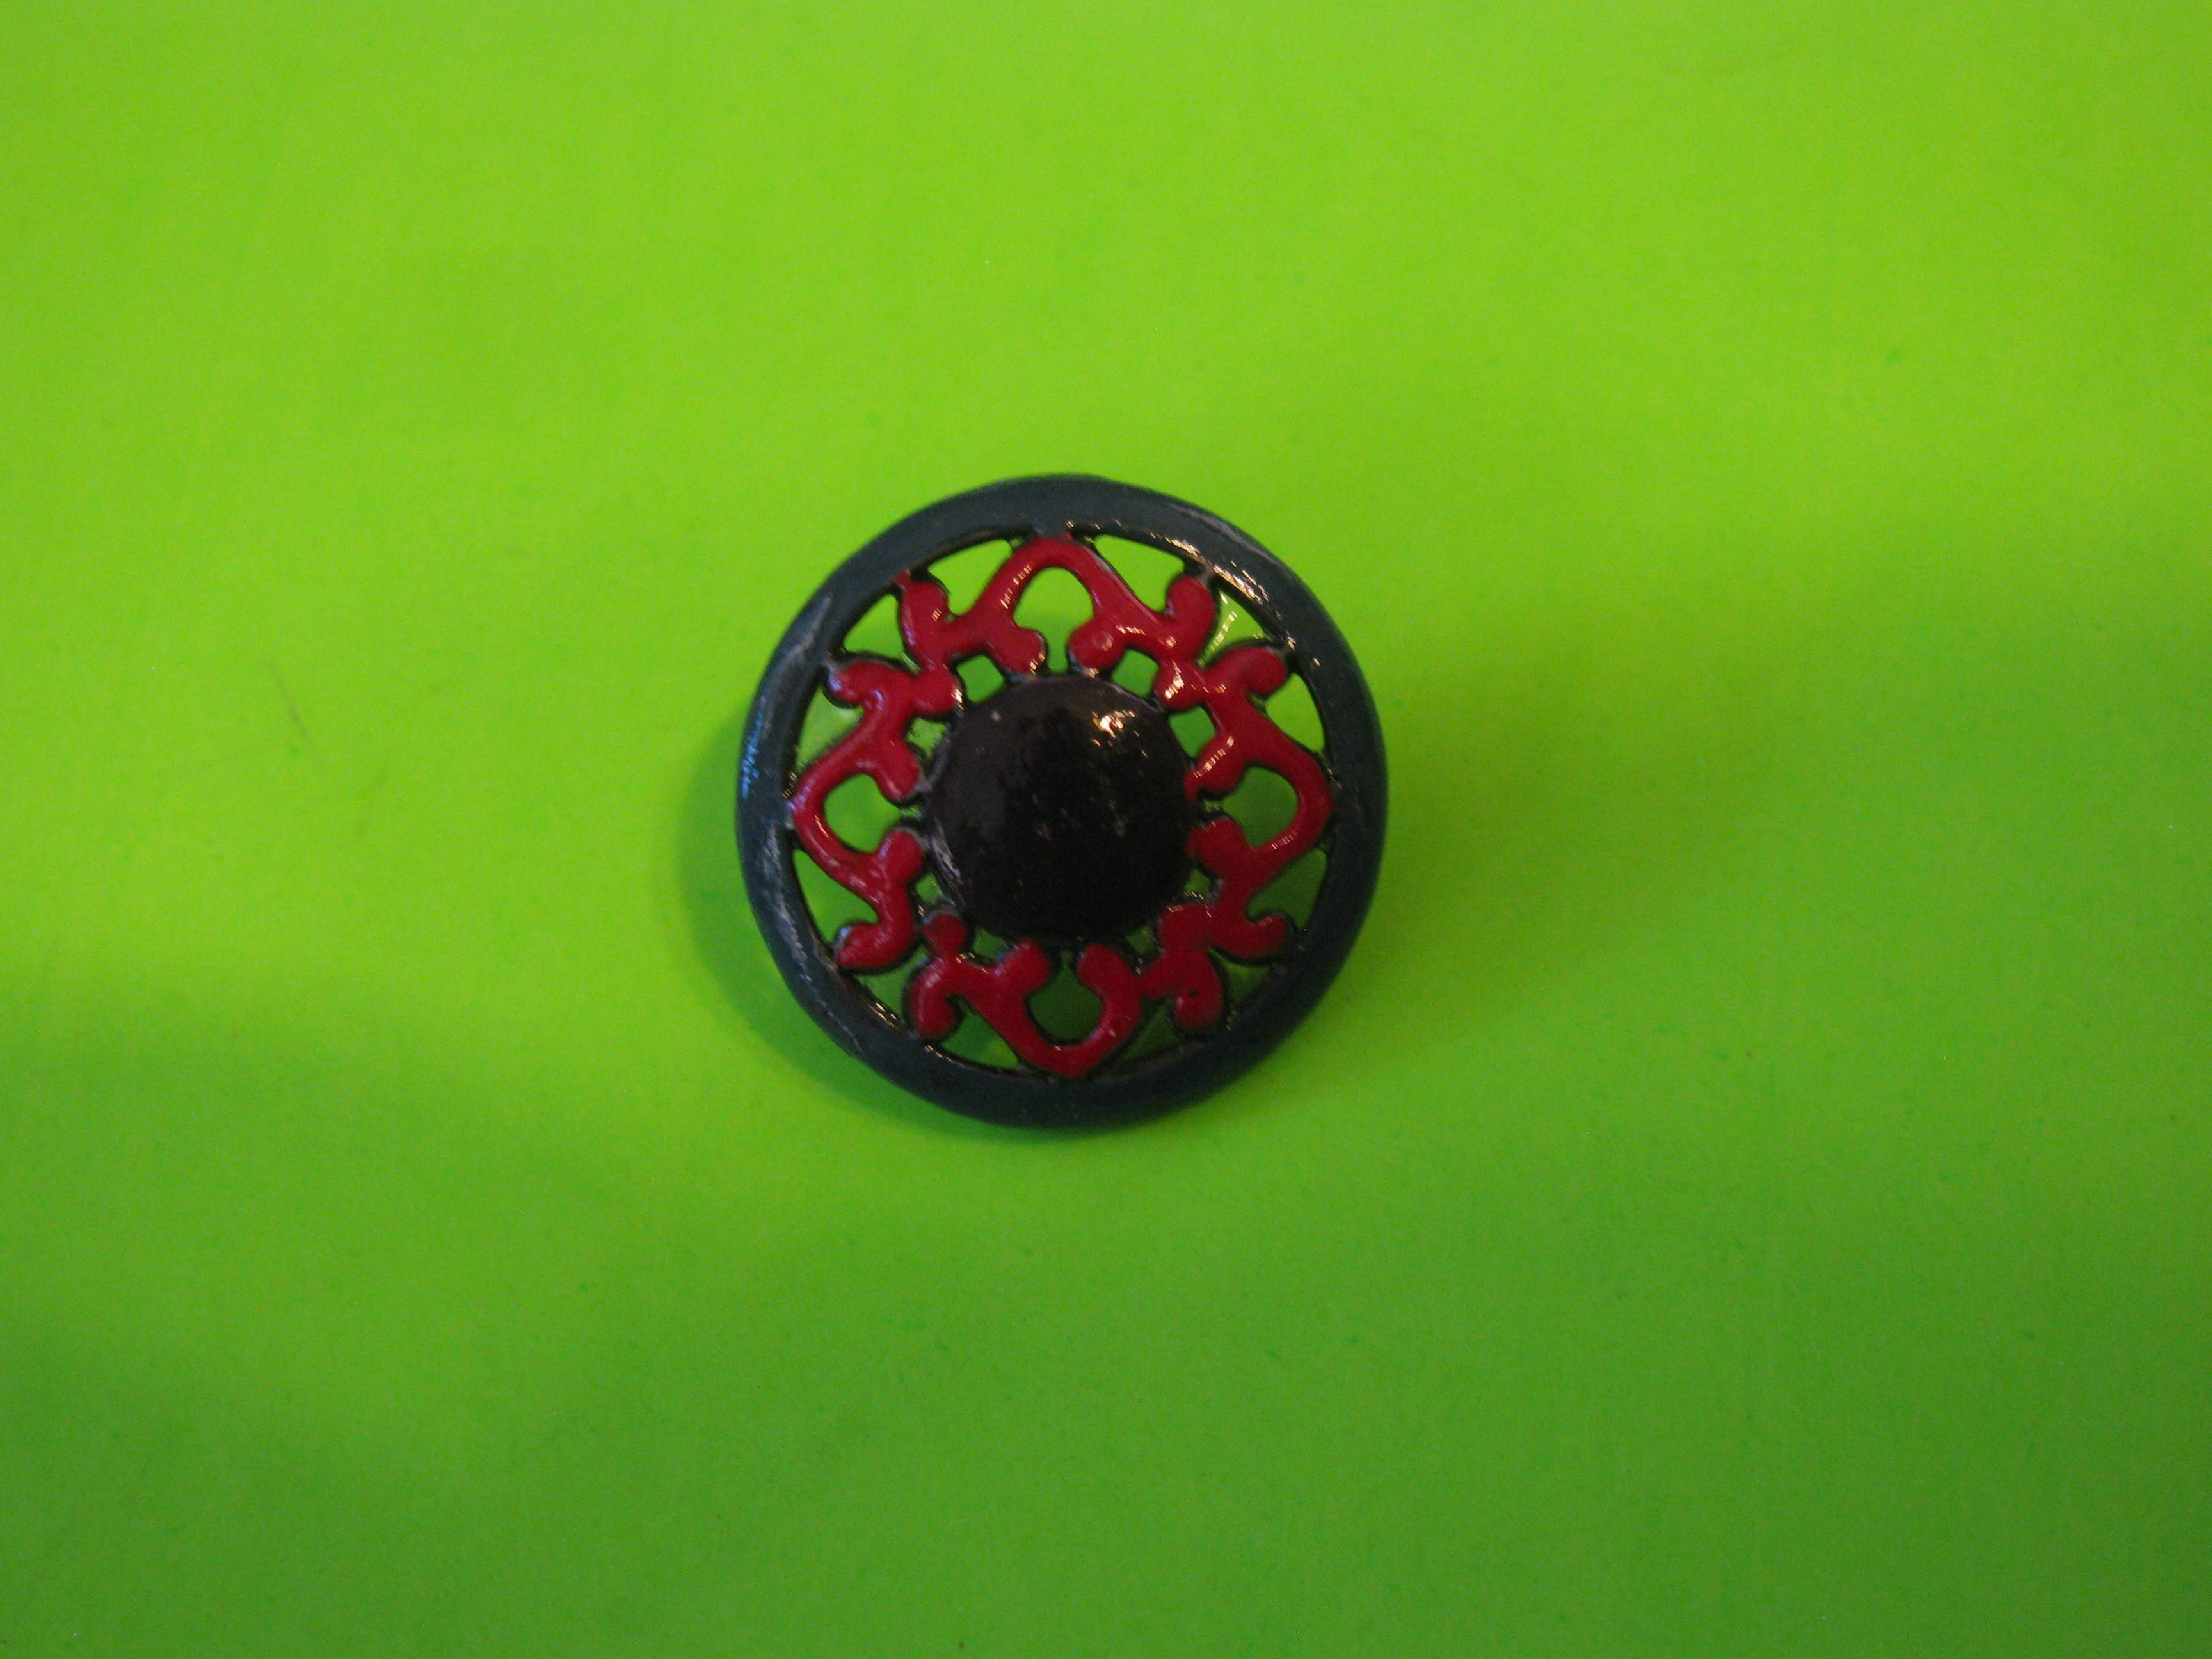 Vintage Metal Button with Colorful Design and Metal Loop Shank